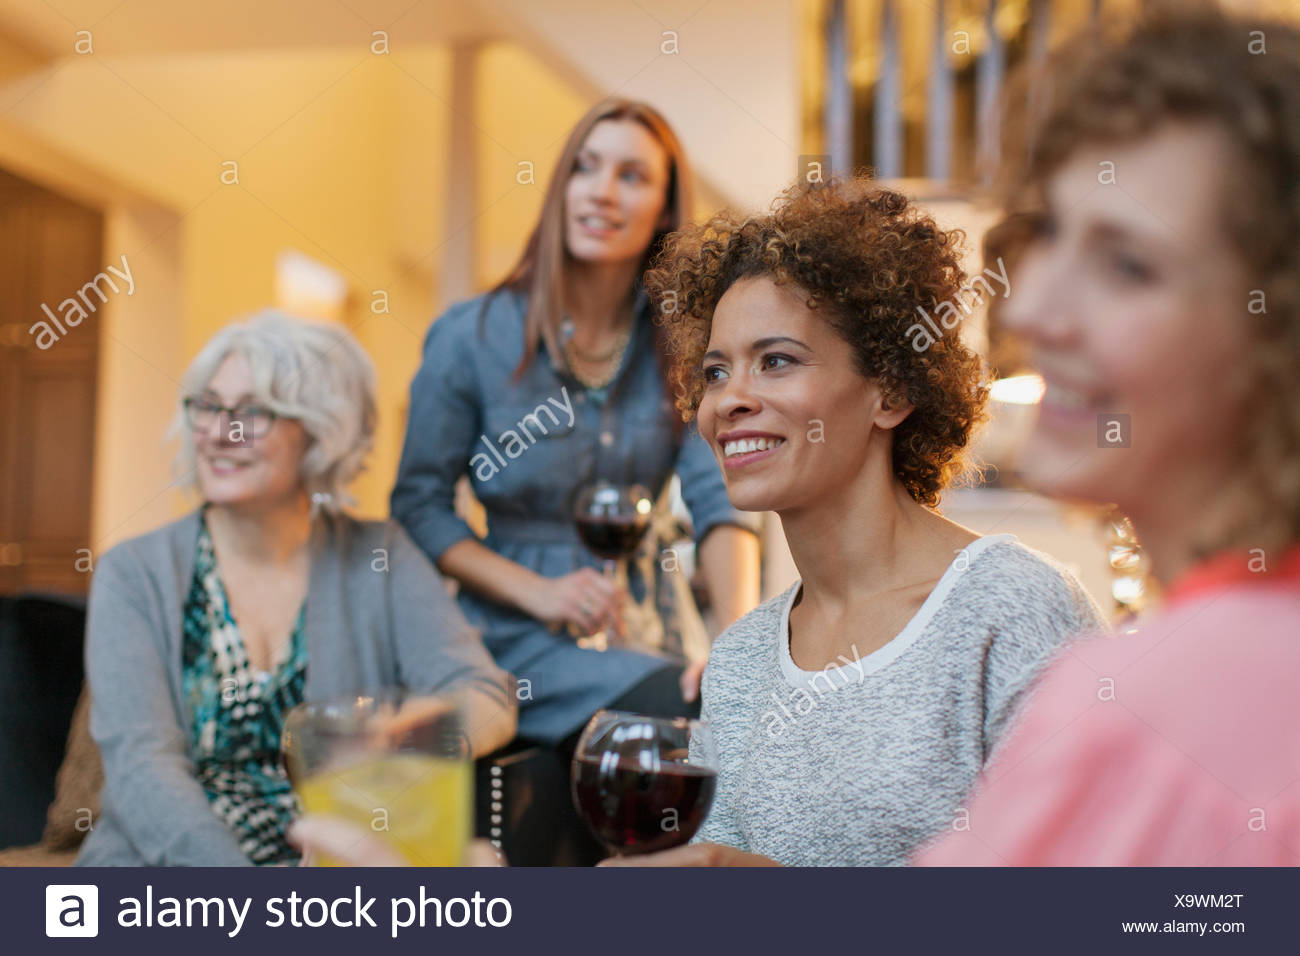 Les amies d'un vin à la maison. Photo Stock